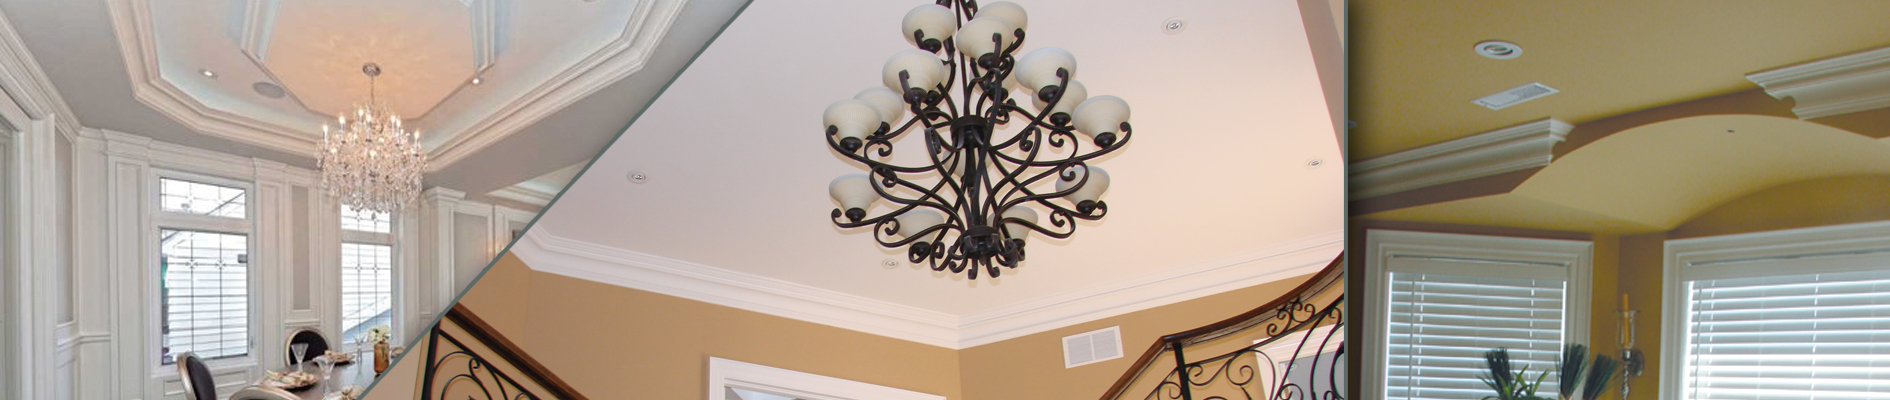 Crown moulding, Plain cornice